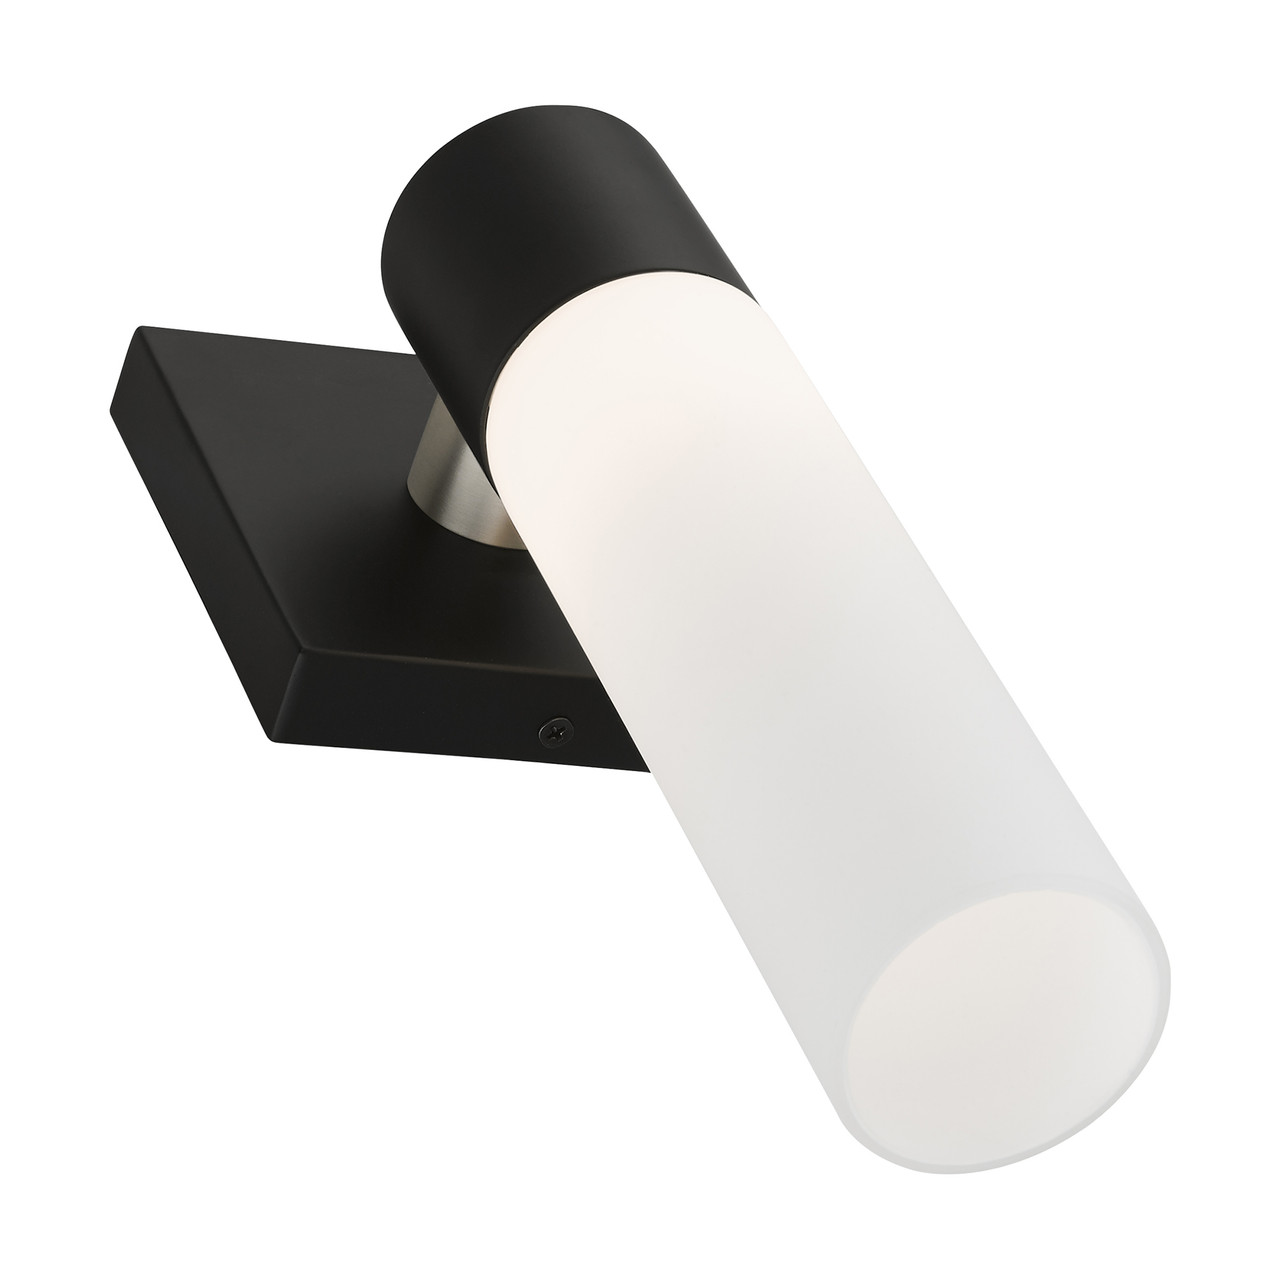 LIVEX LIGHTING 10101-04 Black ADA Single Sconce Black with Brushed Nickel Accent